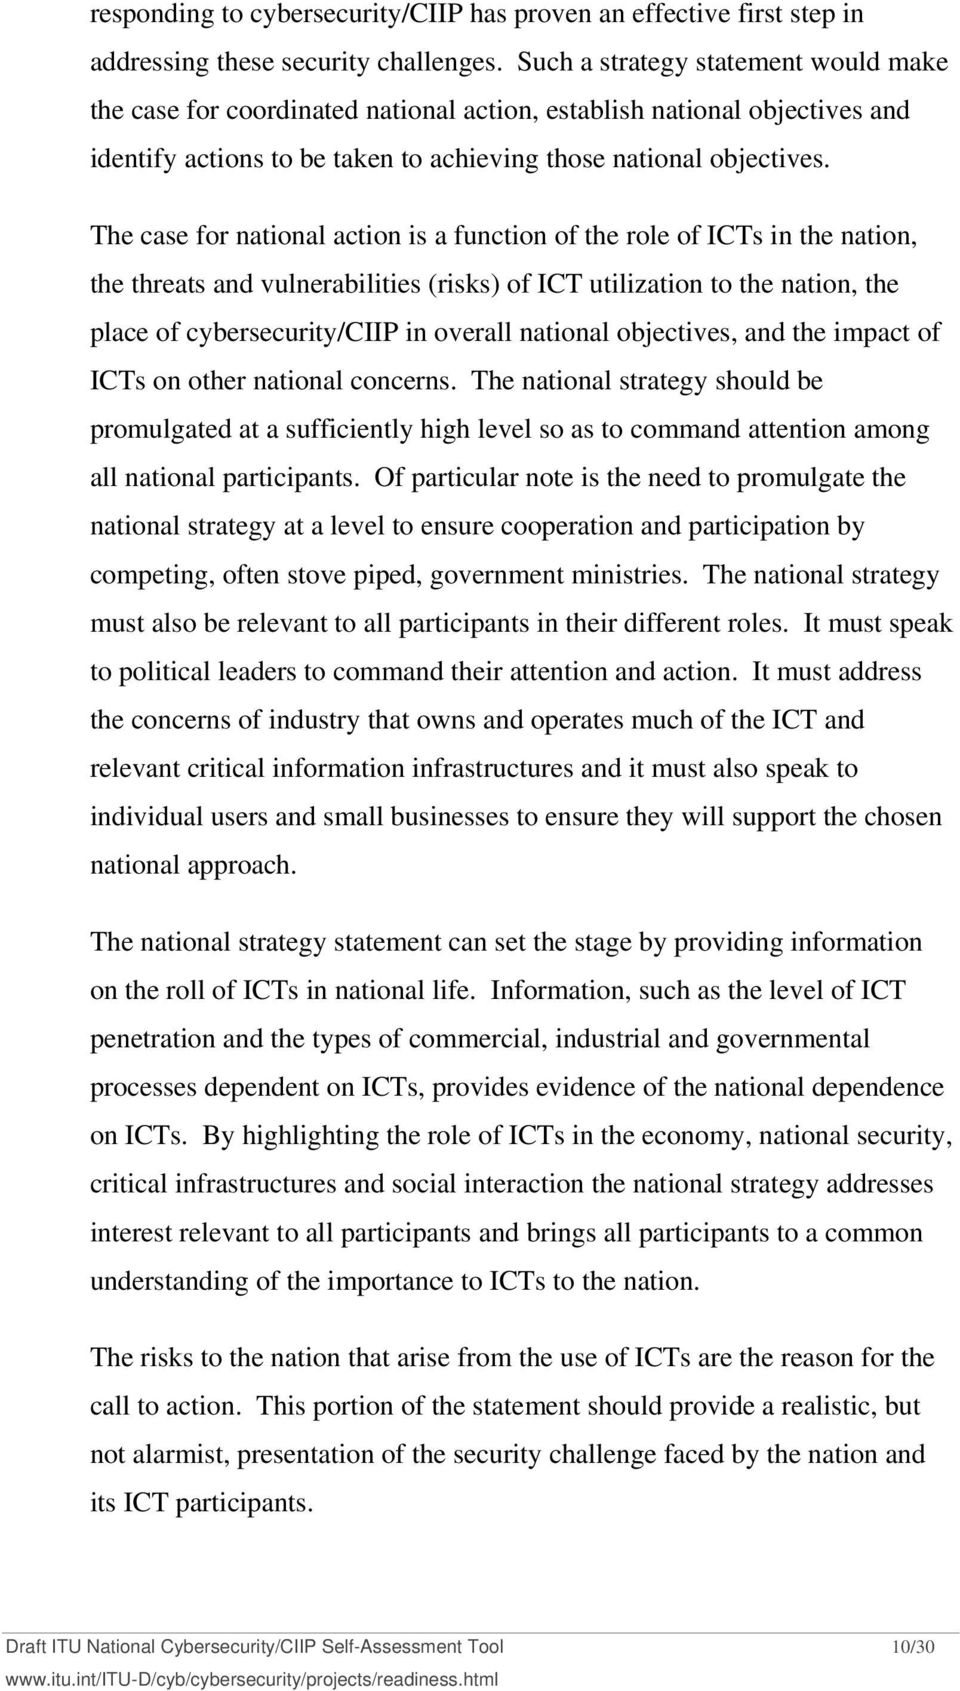 The case for national action is a function of the role of ICTs in the nation, the threats and vulnerabilities (risks) of ICT utilization to the nation, the place of cybersecurity/ciip in overall